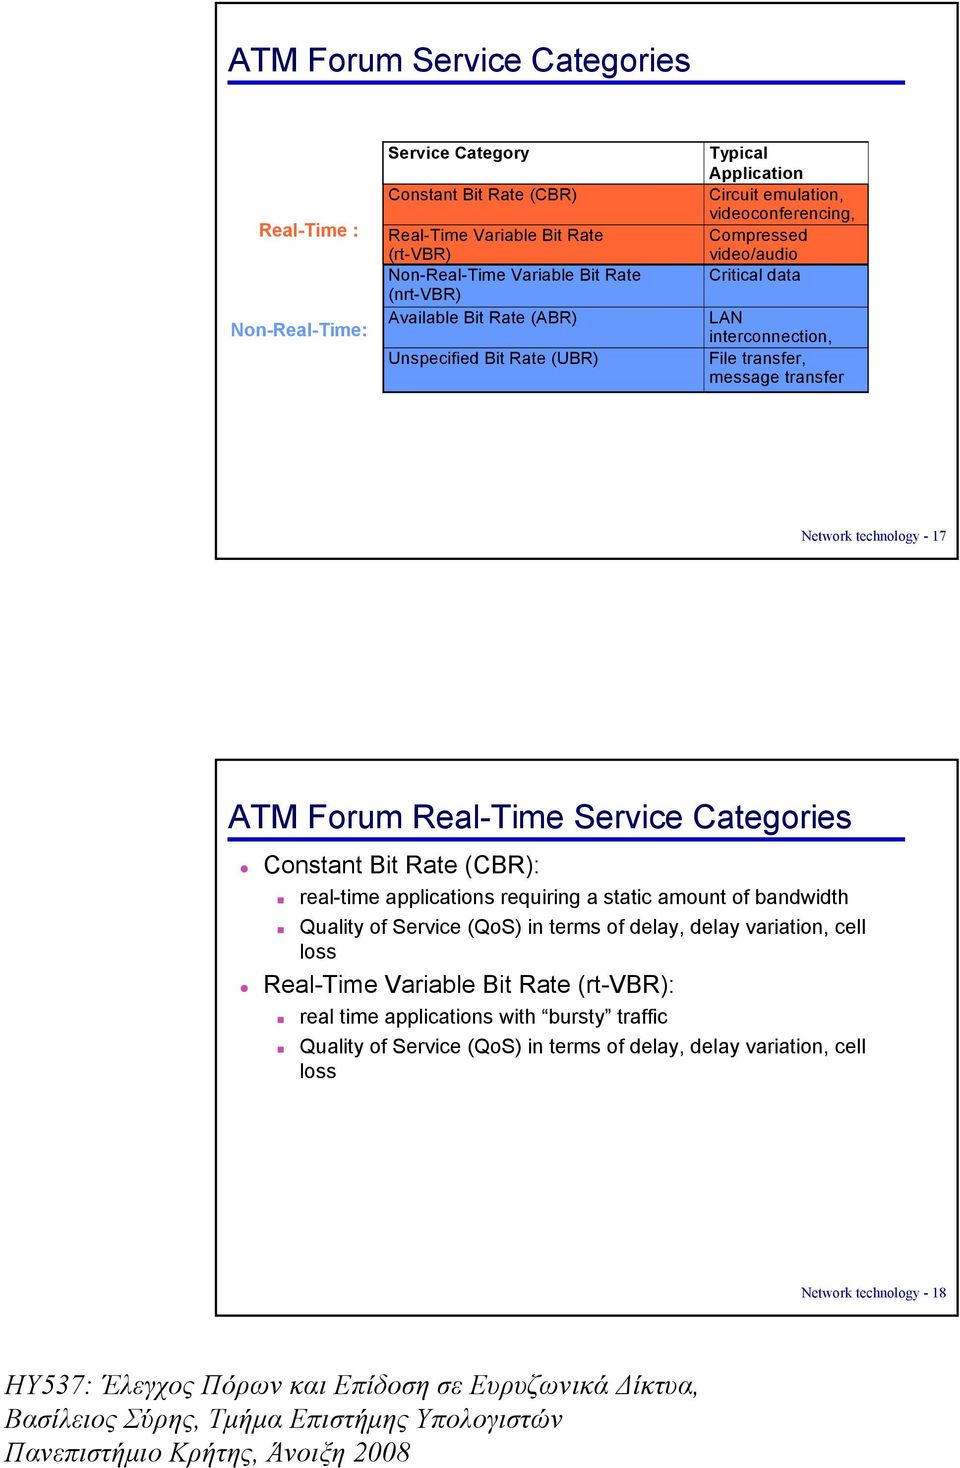 Network technology - 17 ATM Forum Real-Time Service Categories Constant Bit Rate (CBR): real-time applications requiring a static amount of bandwidth Quality of Service (QoS) in terms of